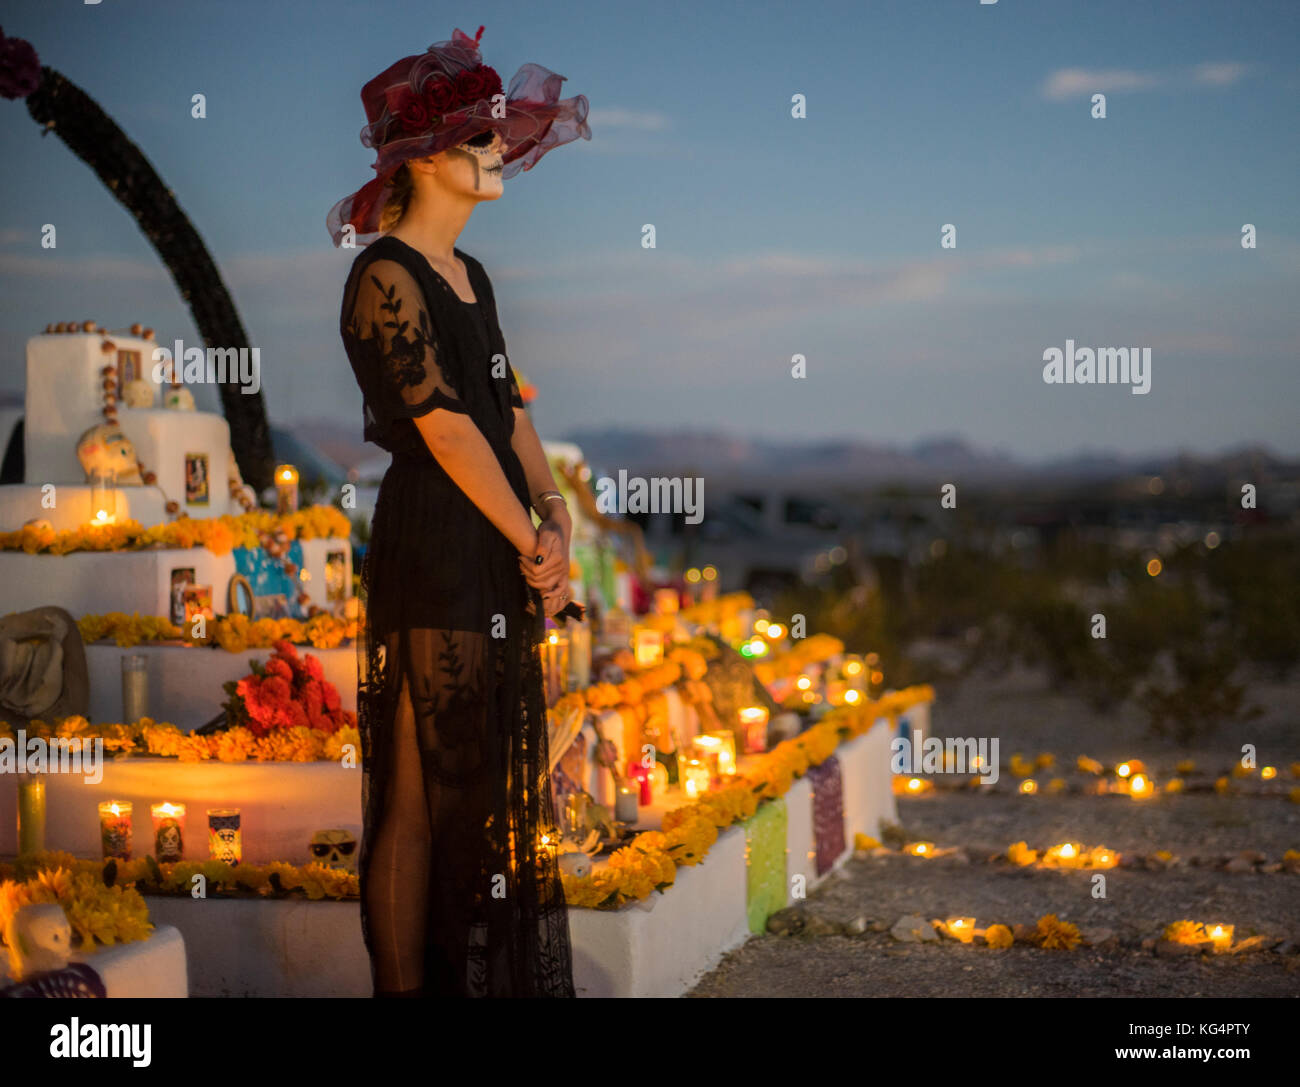 Day Of The Dead Mexico Celebration Stock Photos & Day Of ... Celebration Of Death